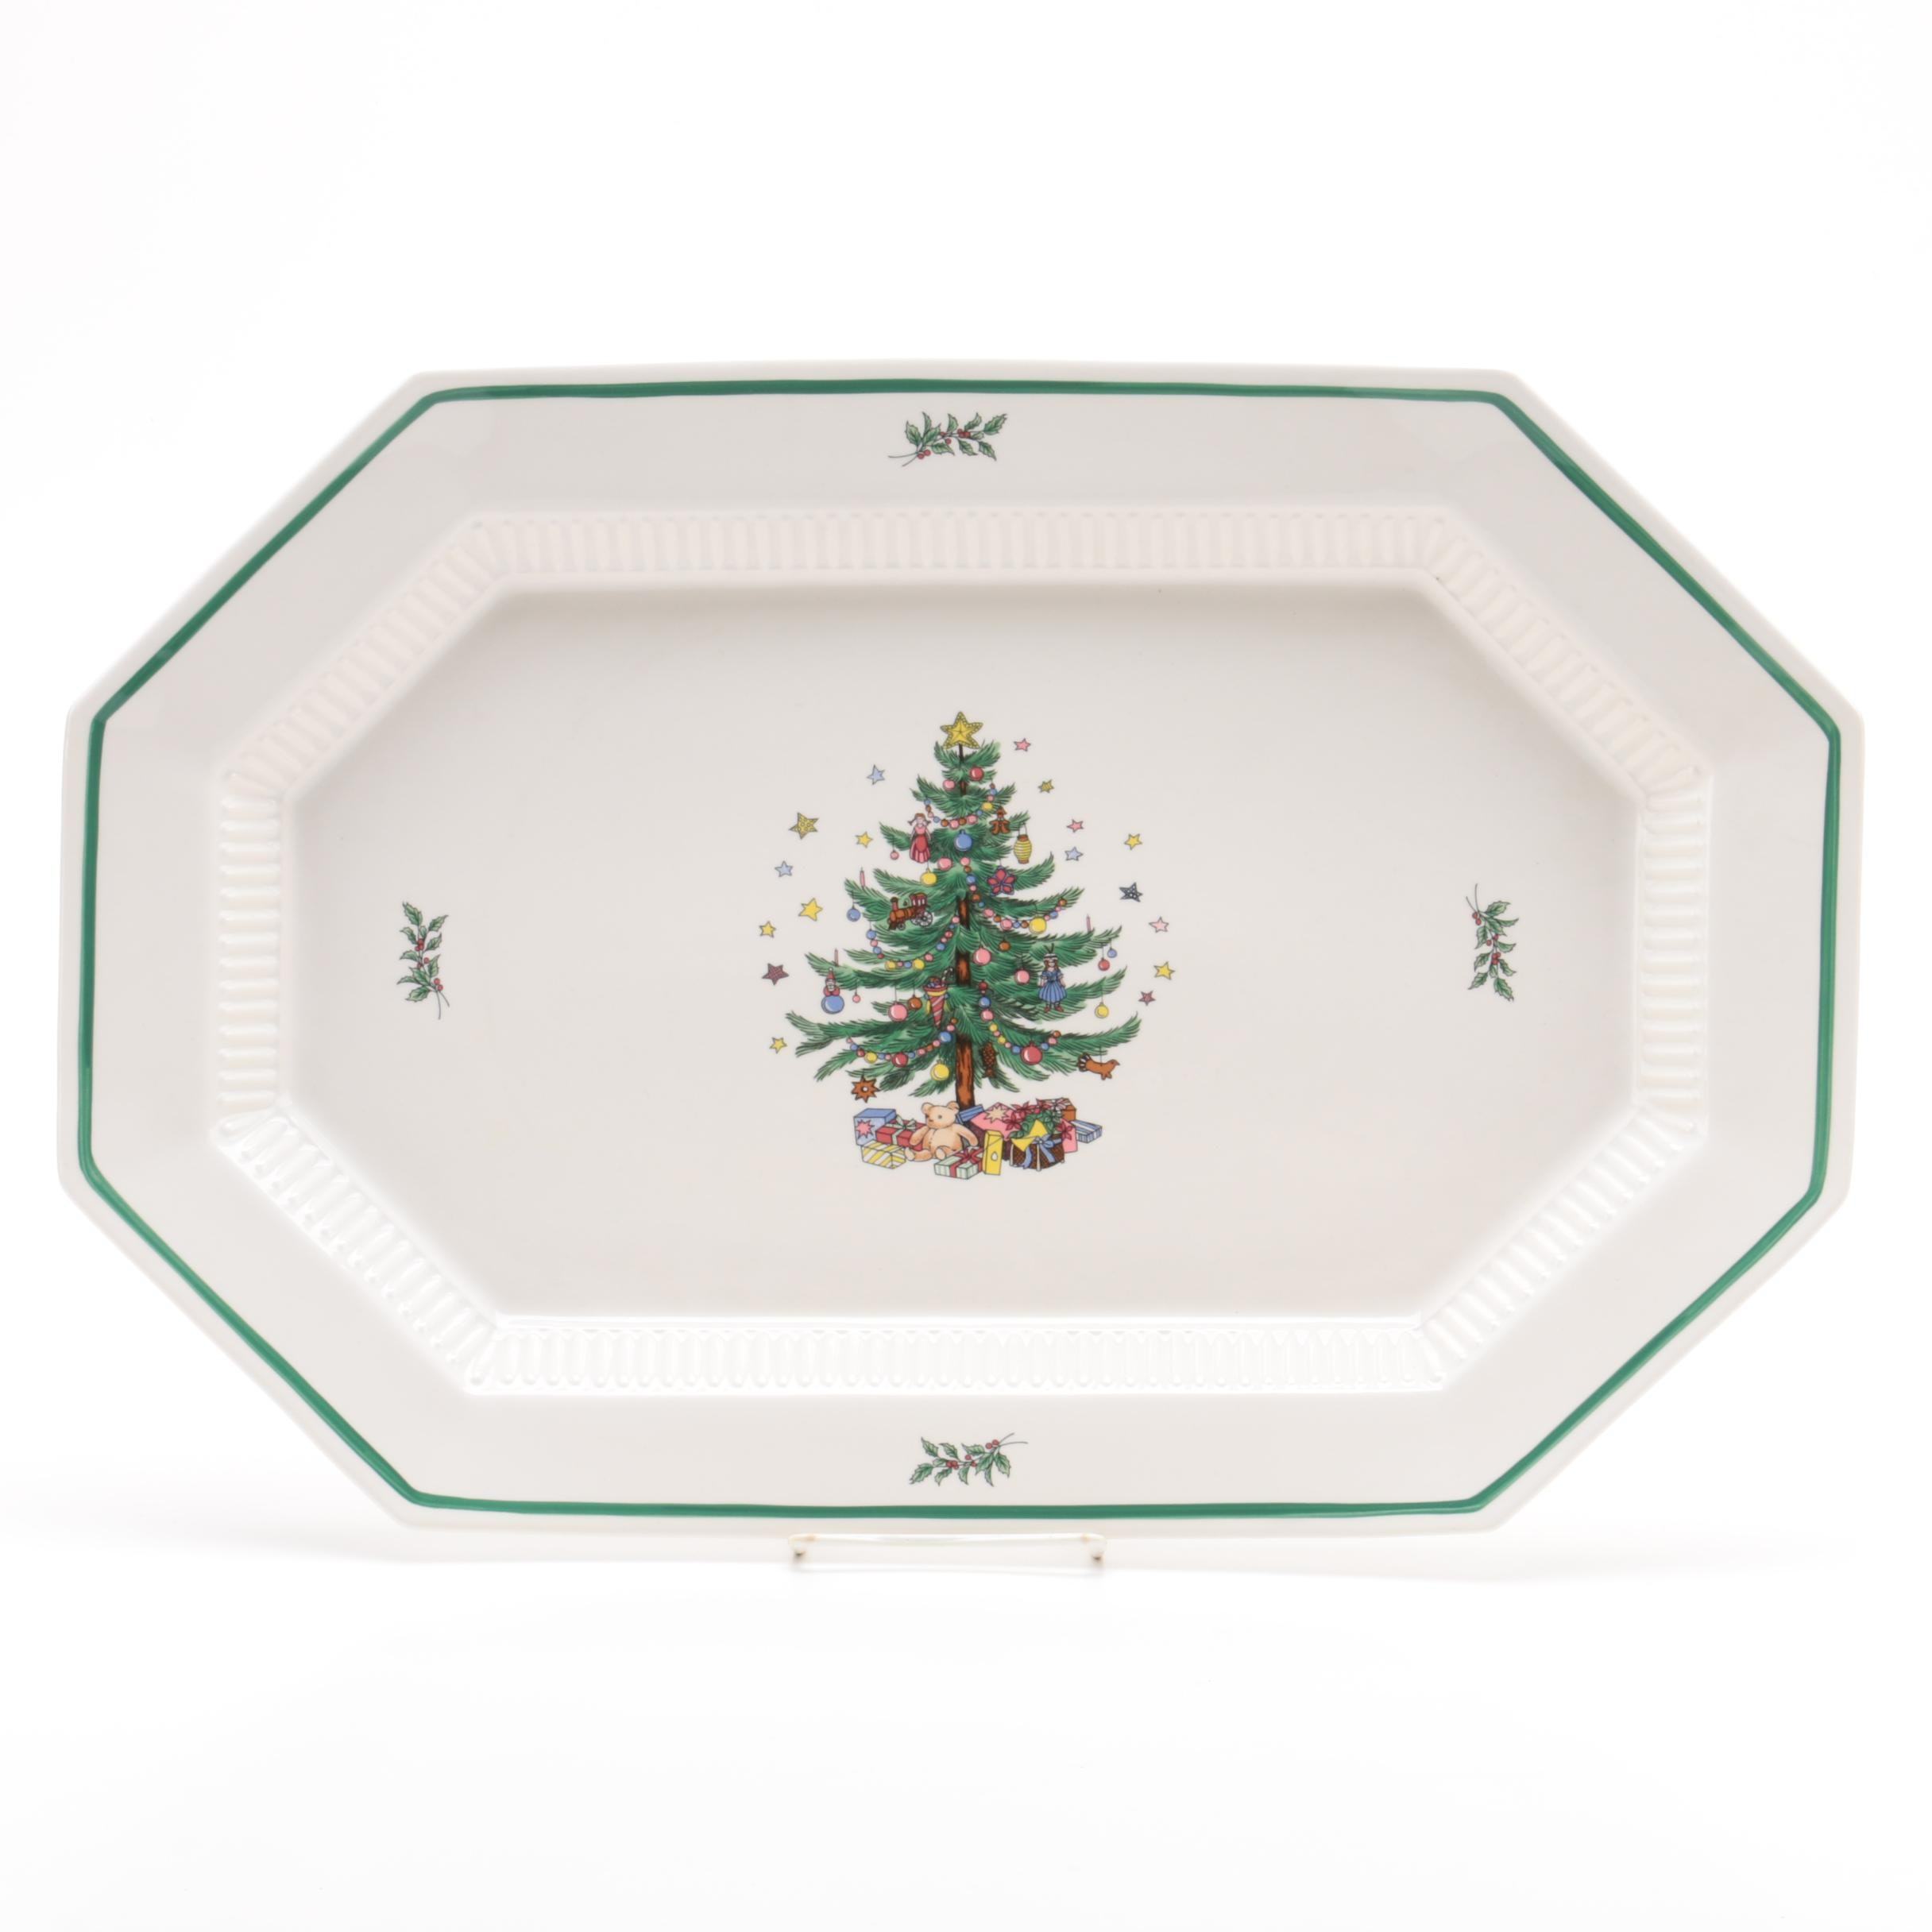 "Nikko ""Christmastime"" Porcelain Serving Tray"